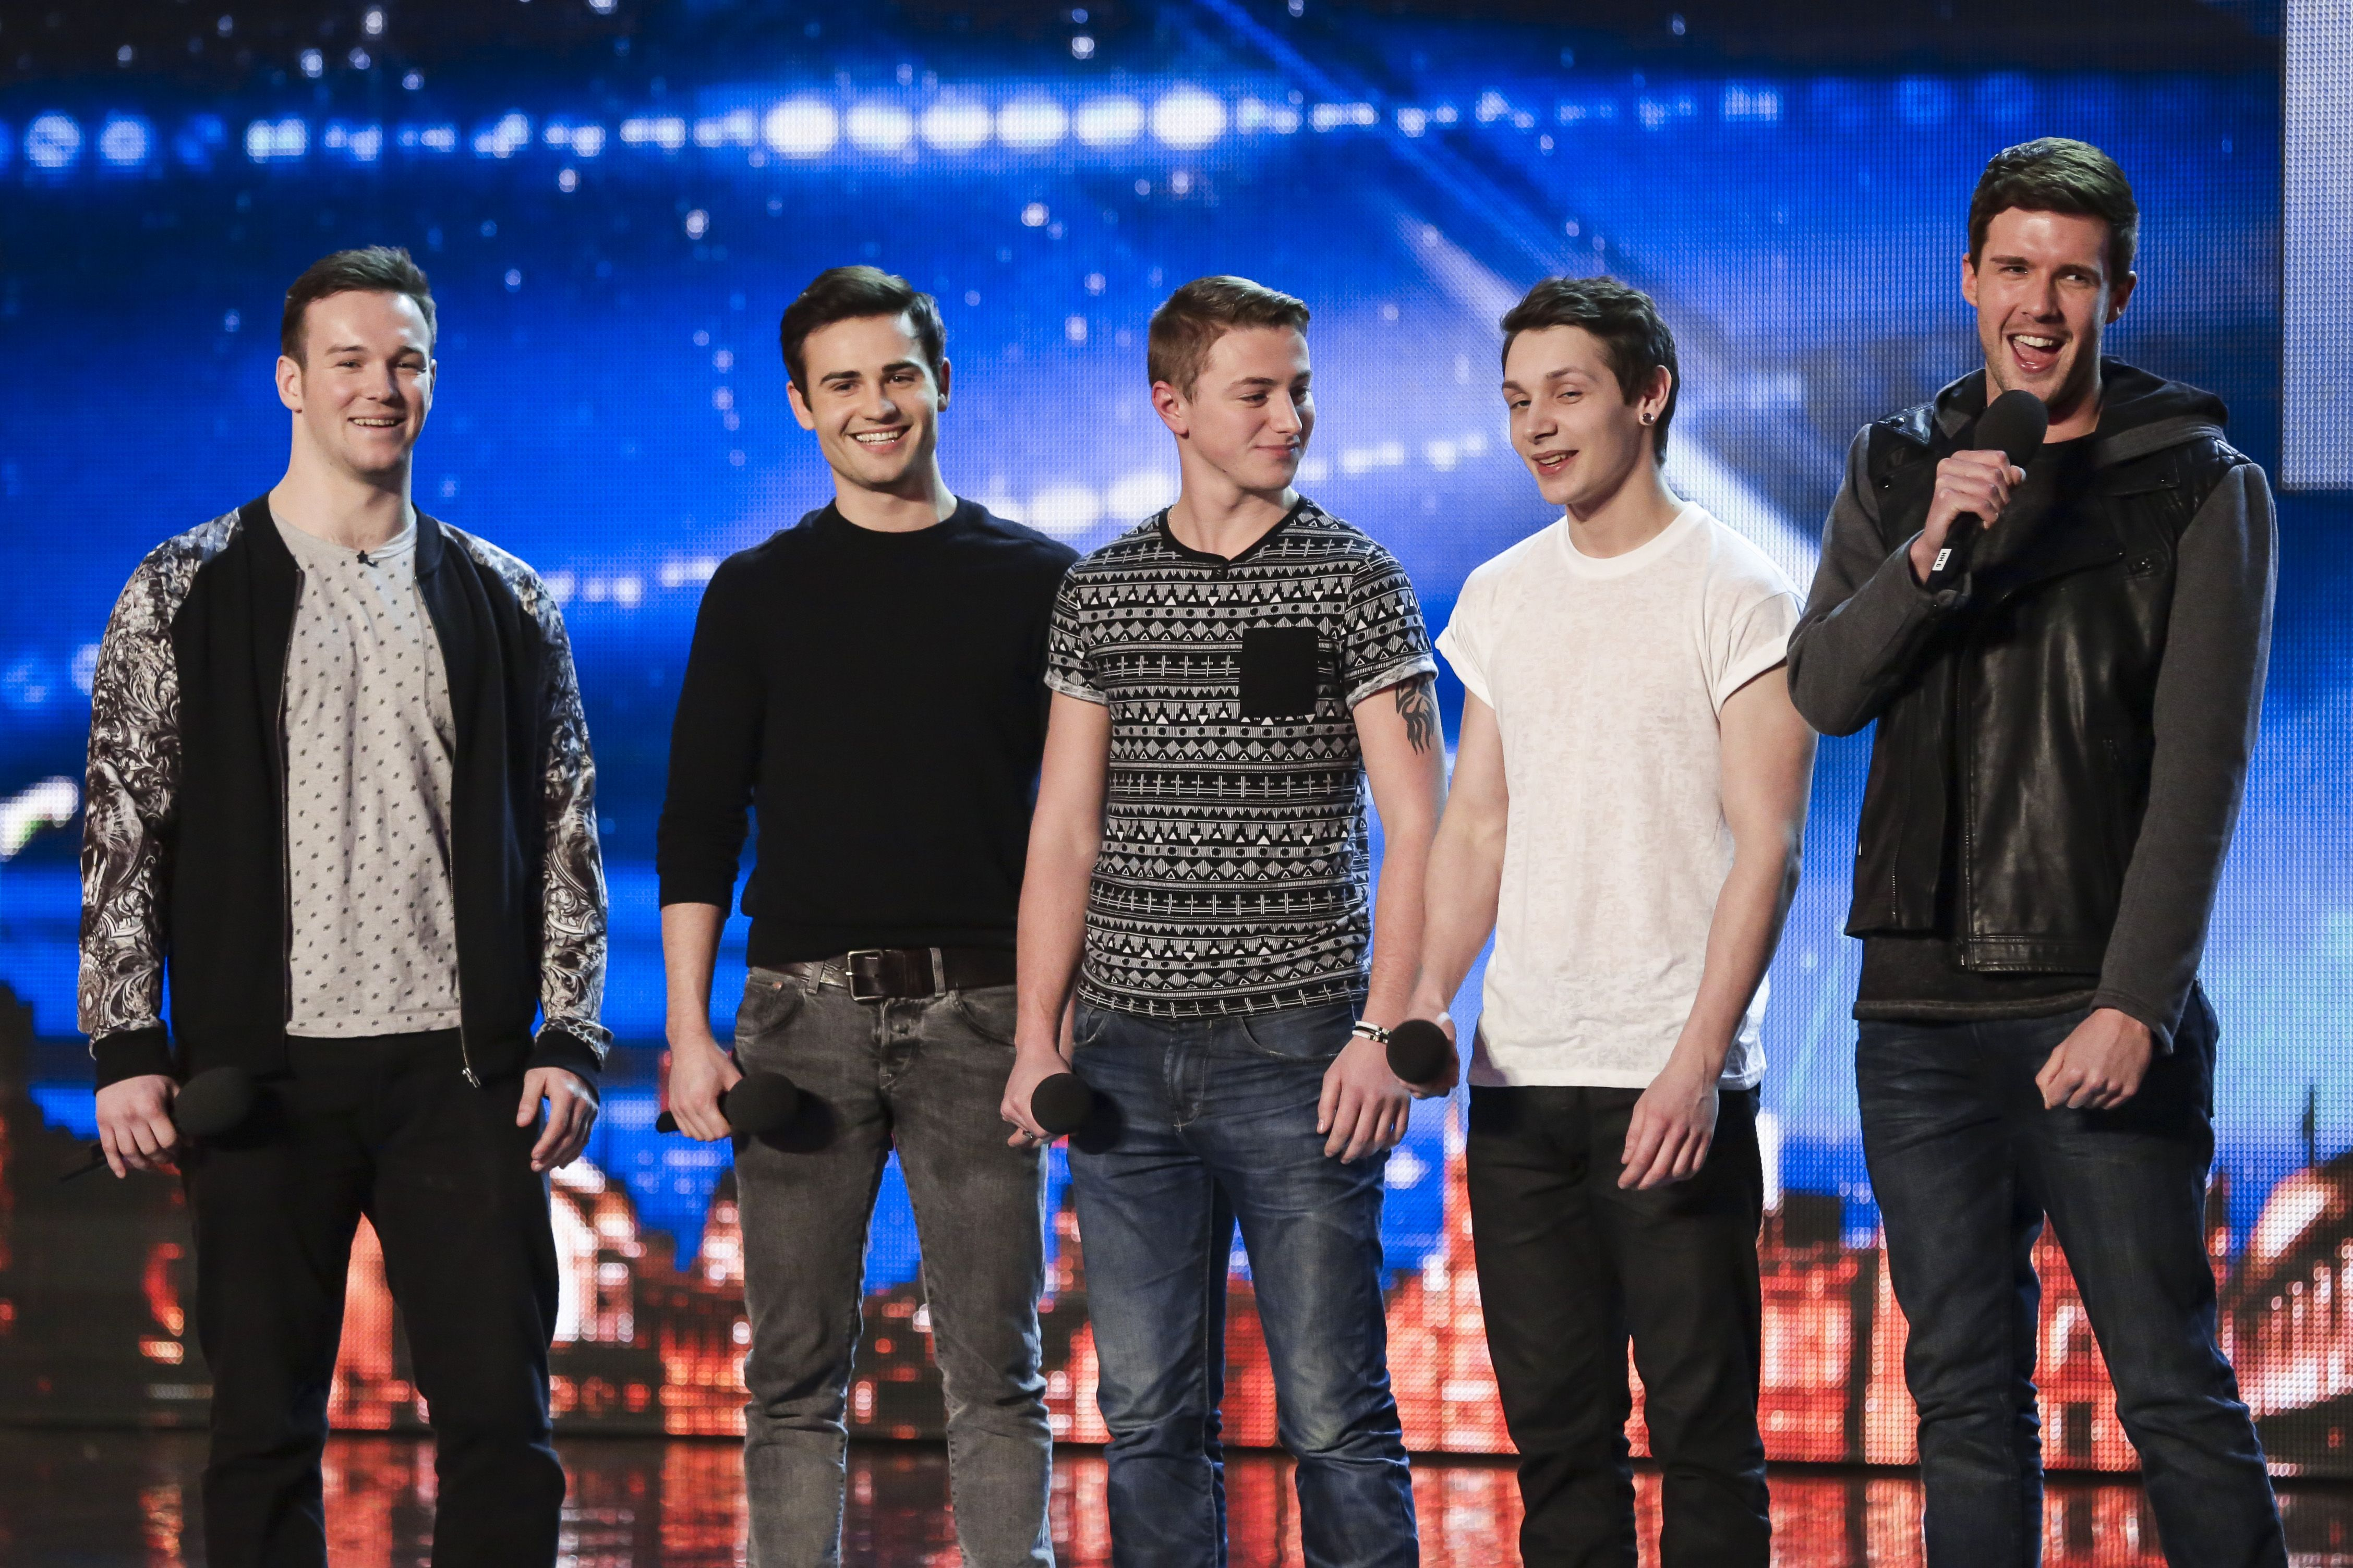 Britain's Got Talent winners Collabro 'close to signing megabucks deal with Simon Cowell's record label'